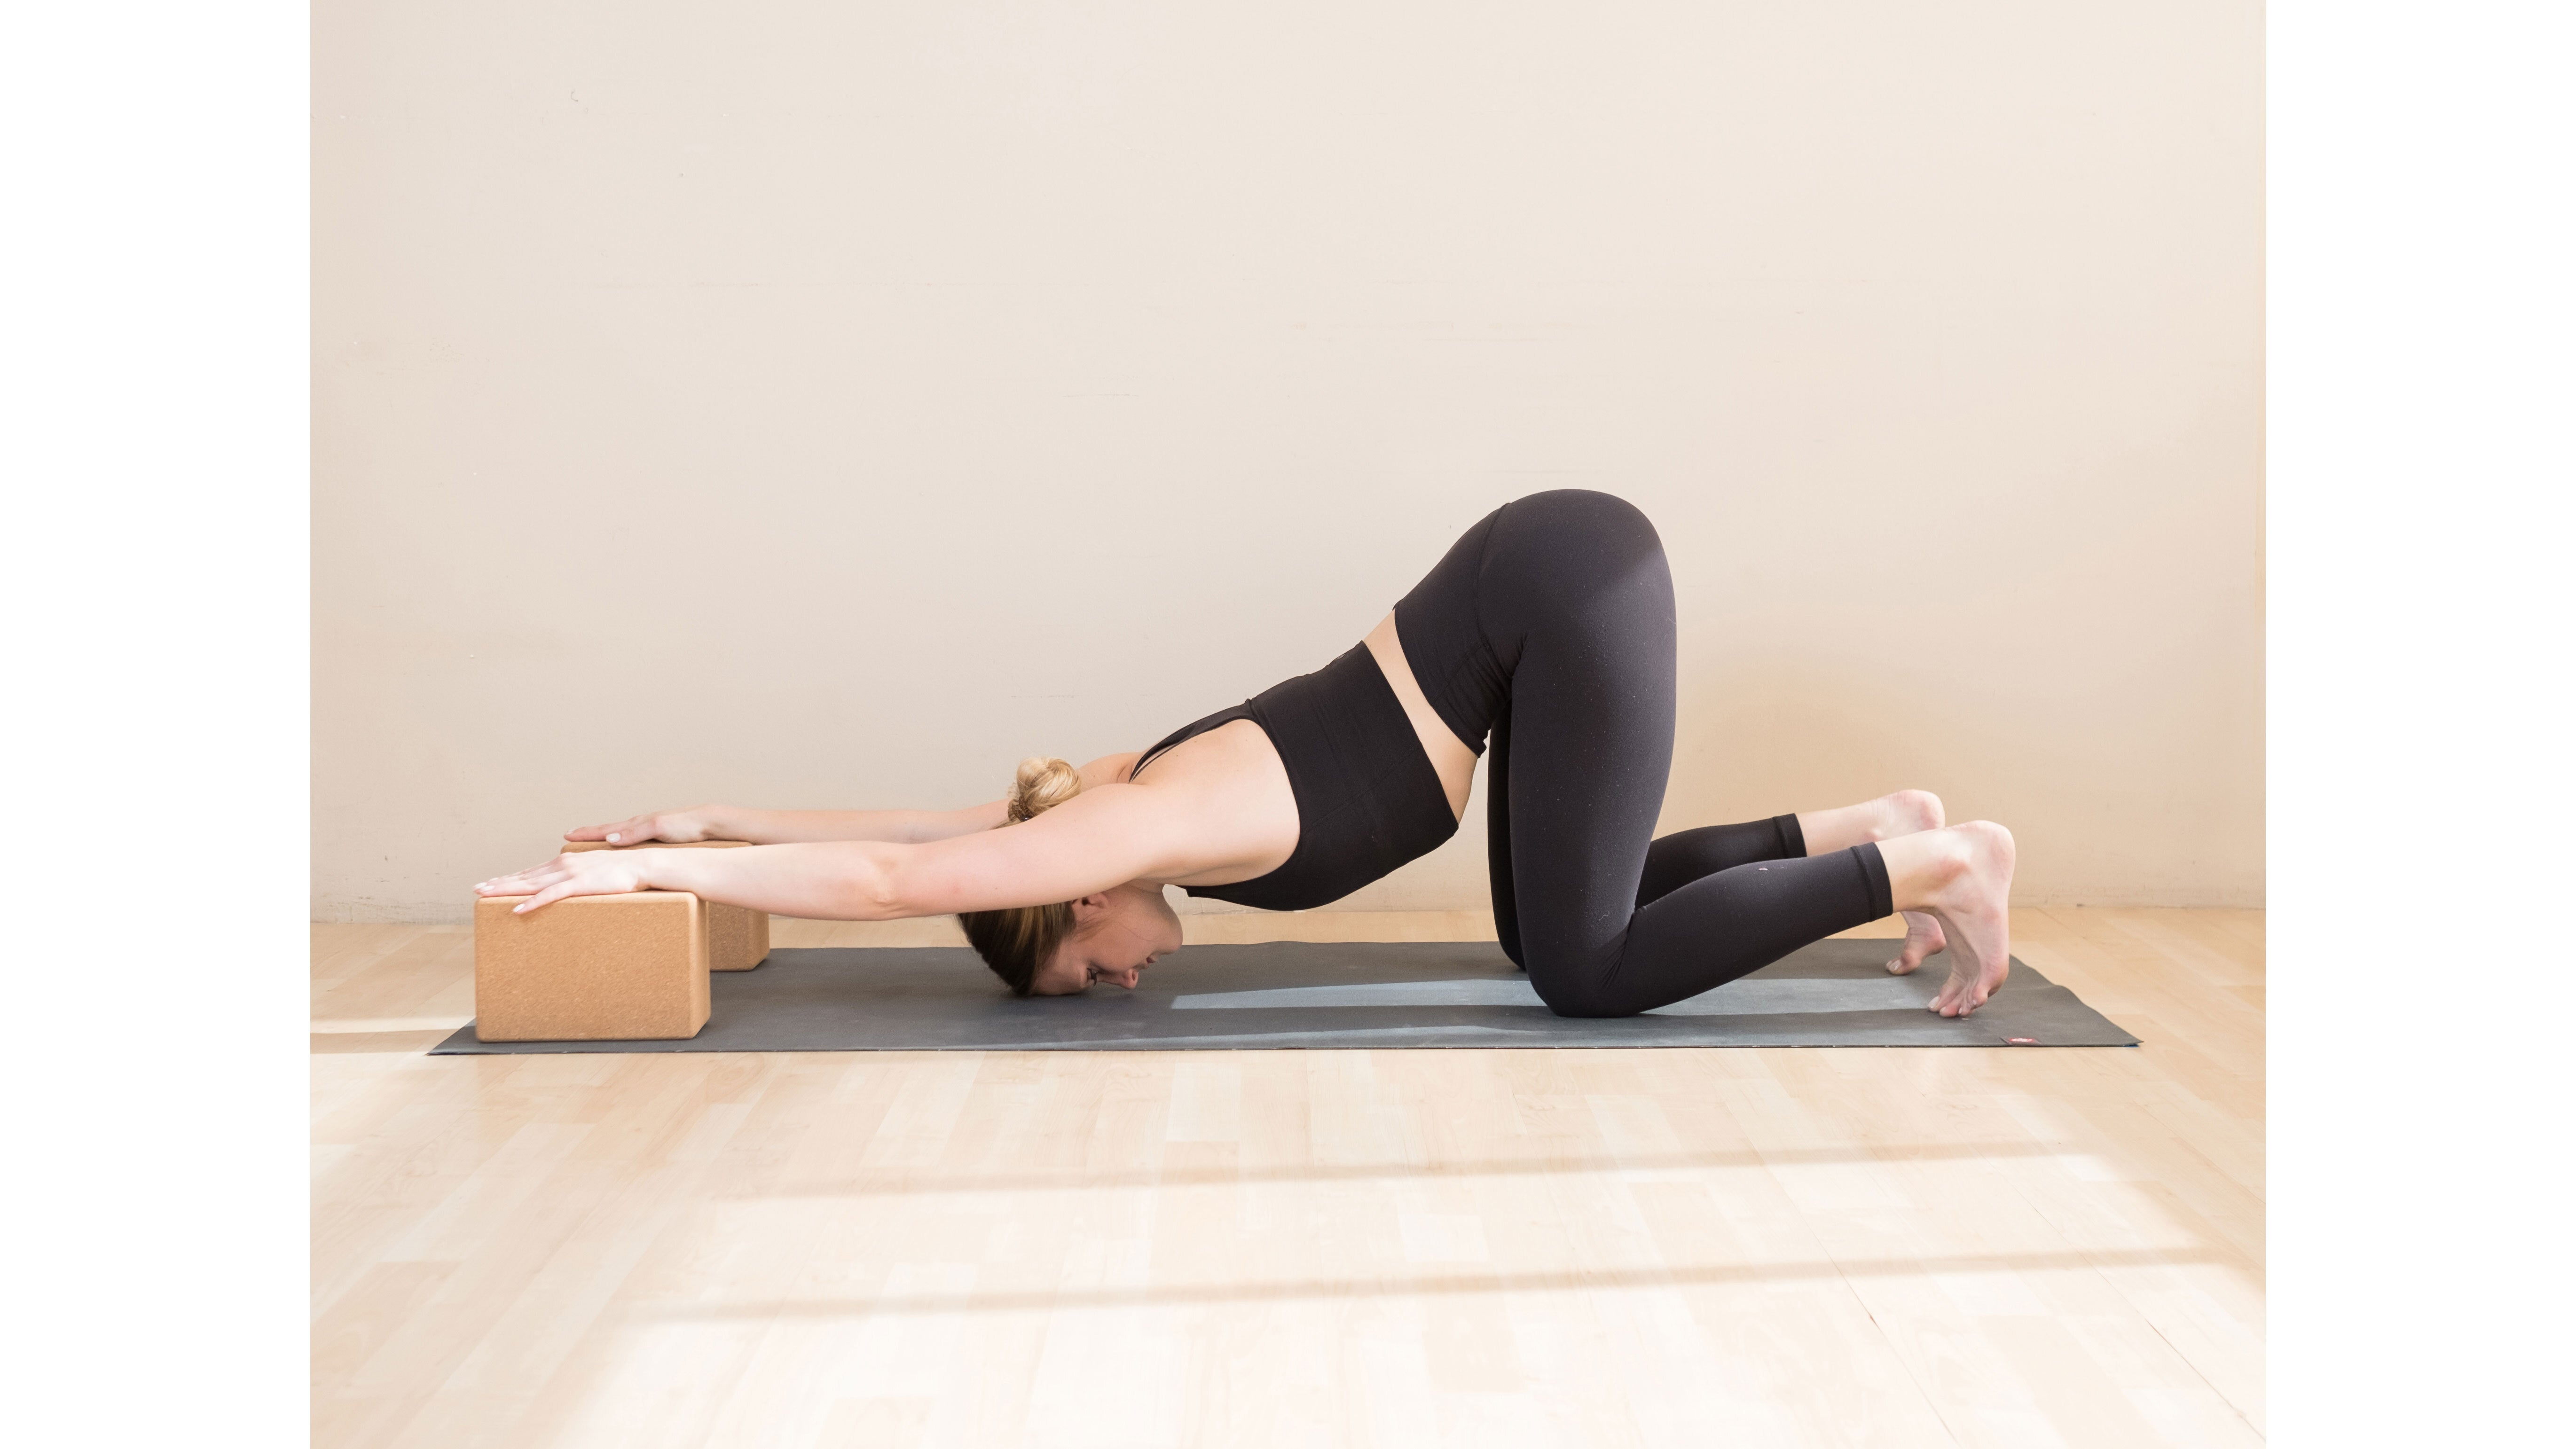 A woman performs Uttana Shishosana (Extended Puppy Pose) variation with blocks